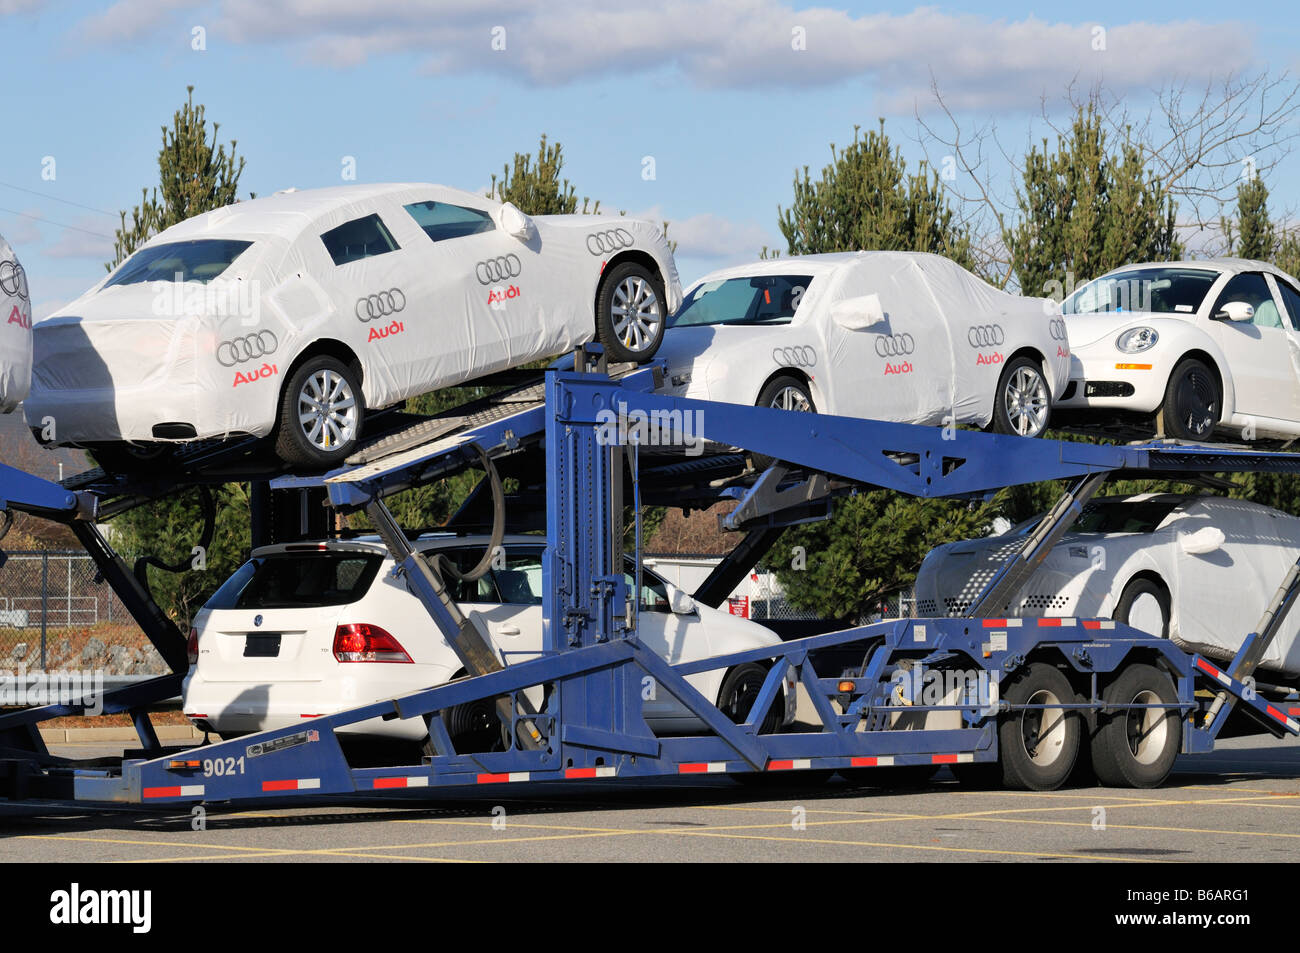 Car carrier with Audi and Volkswagen cars - Stock Image